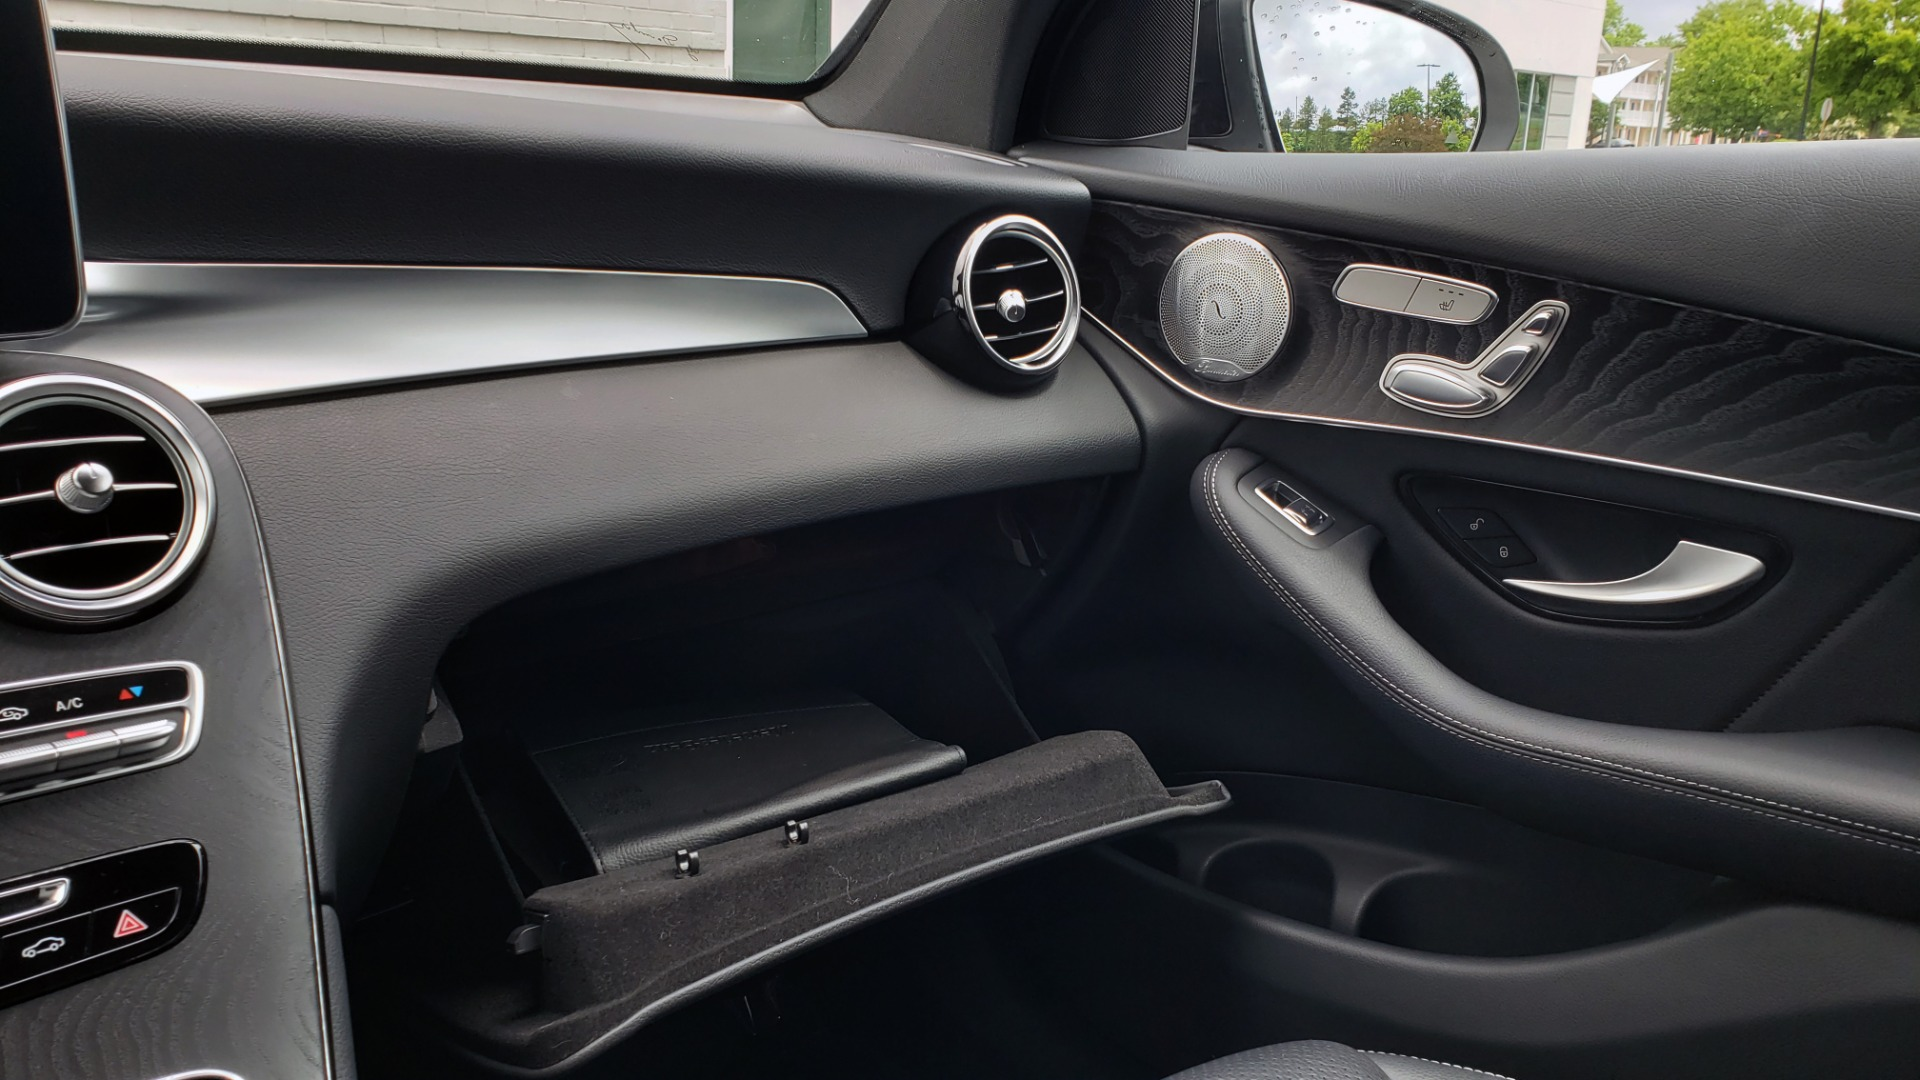 Used 2018 Mercedes-Benz GLC 300 4MATIC PREMIUM / NAV / BURMESTER SND / PANO-ROOF / REARVIEW for sale $35,495 at Formula Imports in Charlotte NC 28227 50